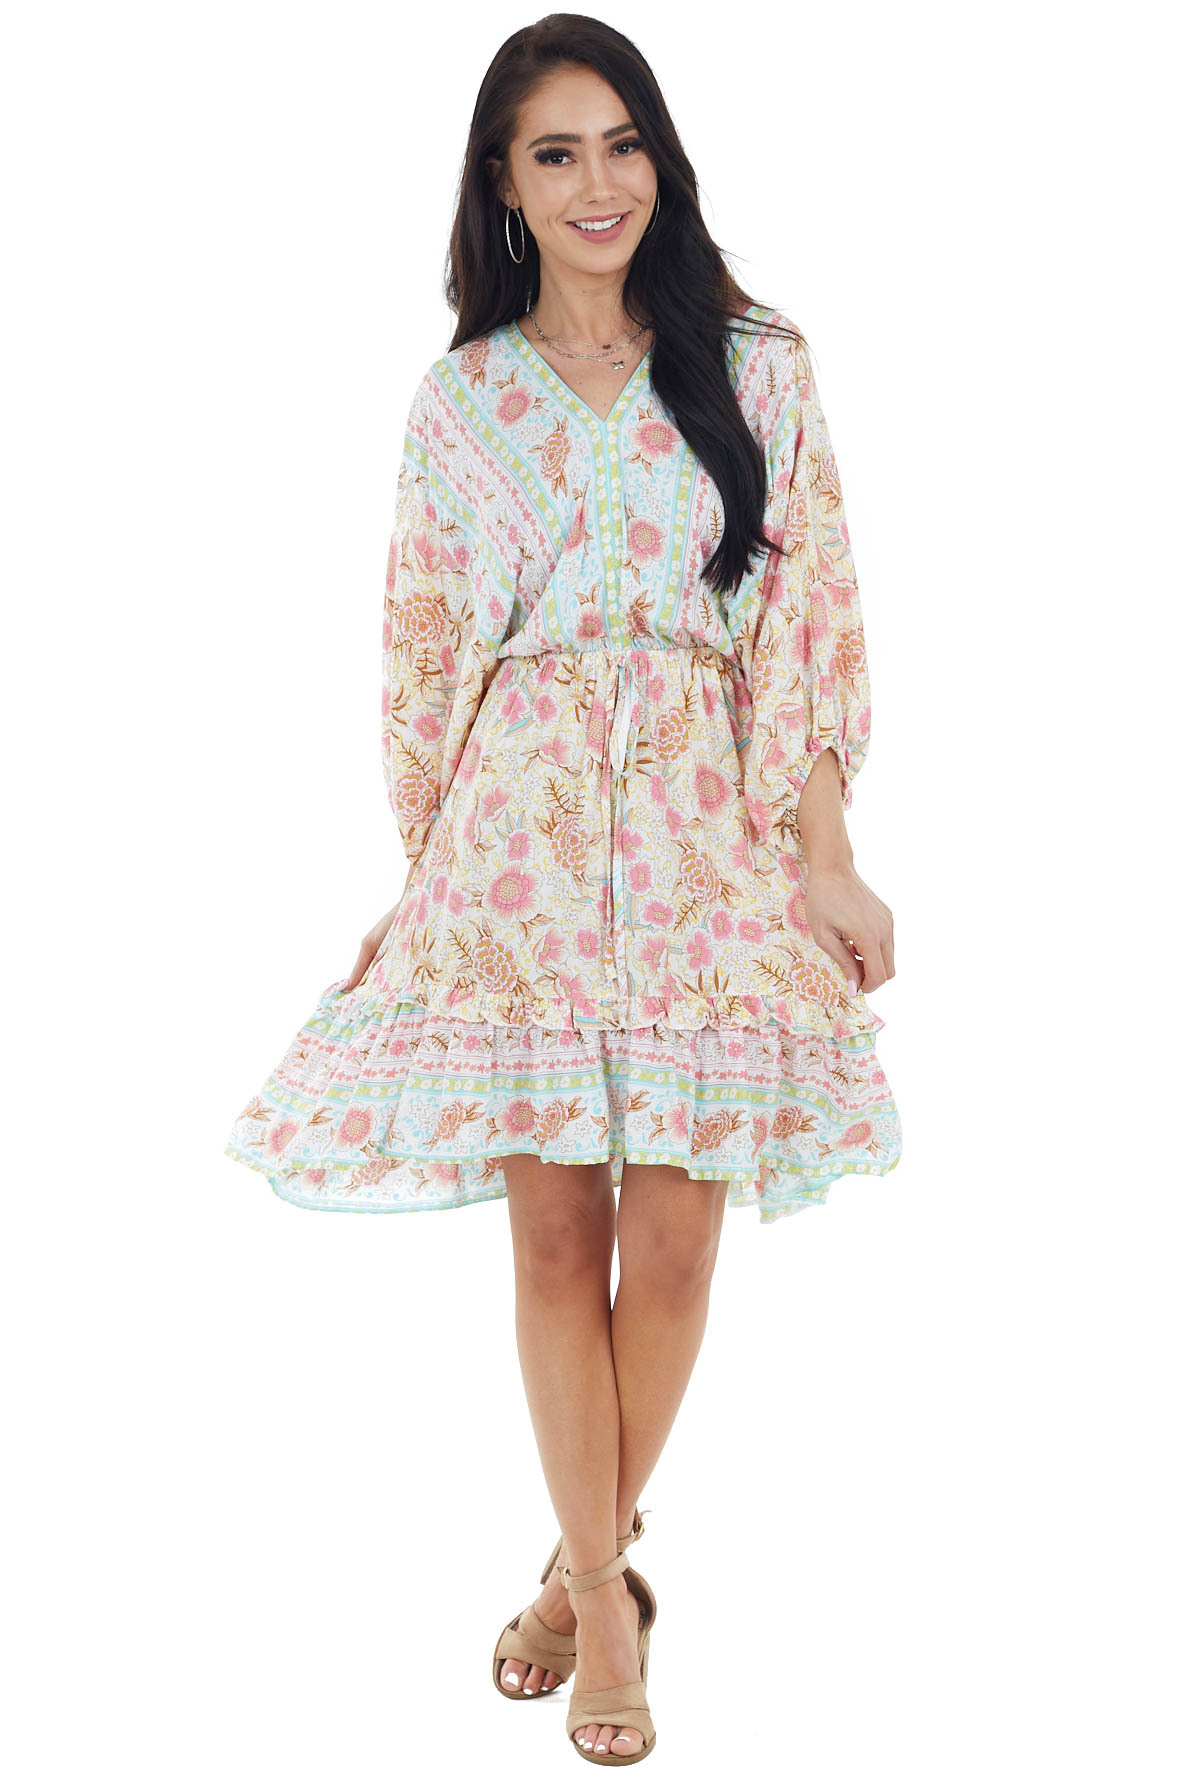 Ivory Floral Print Dress with 3/4 Length Bubble Sleeves